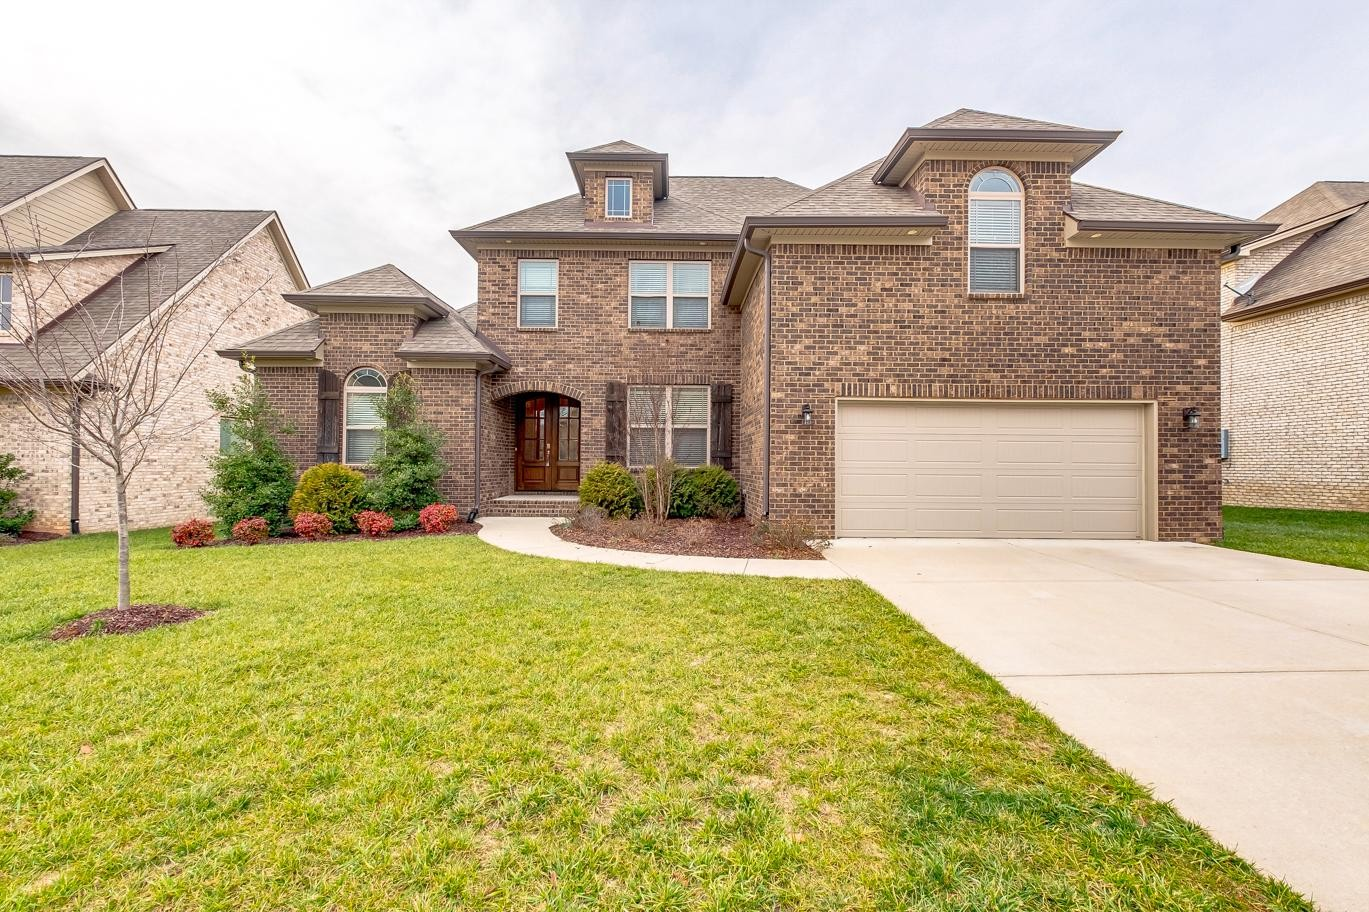 4023 Haversack Dr, Spring Hill, Tennessee